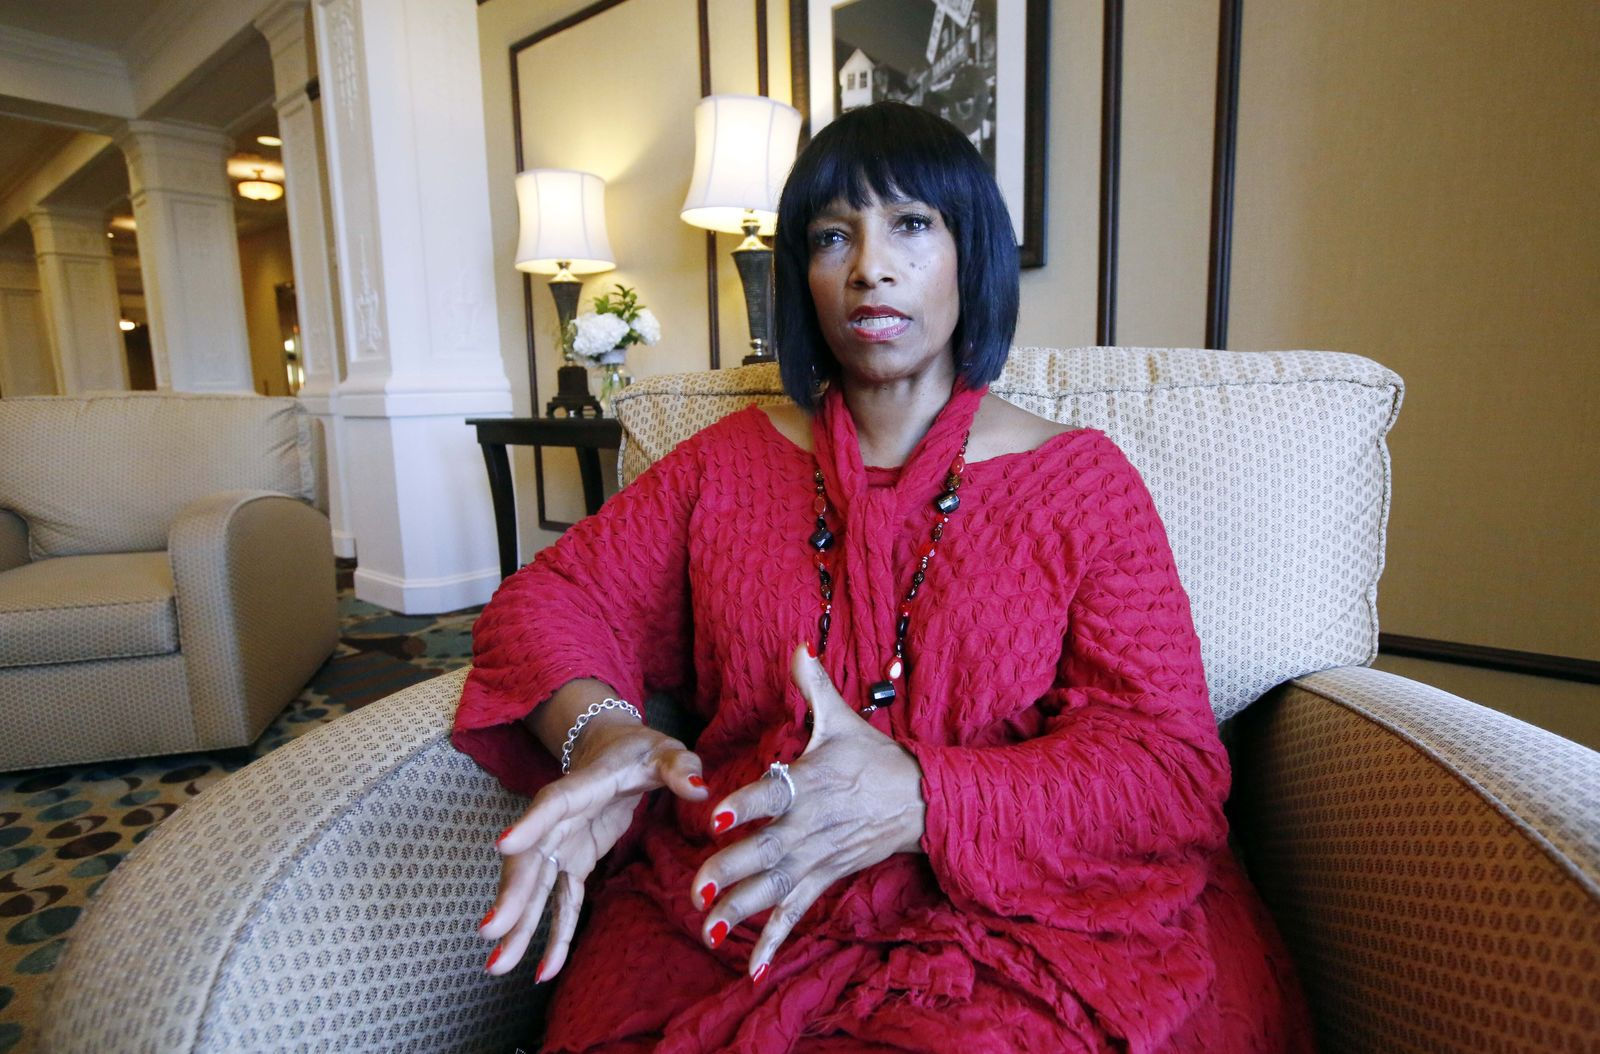 FILE - In this Aug. 27, 2015 file photo, Deborah Watts of Minneapolis, sits in a Jackson, Miss., hotel and speaks about events in Mississippi and Illinois that commemorate the 60th anniversary of the slaying of her cousin, Emmett Till, a black 14-year-old from Chicago, who was visiting relatives in the Mississippi Delta when witnesses said he violated the Jim Crow social code by whistling at a white woman. The government is still investigating the brutal slaying of the black teenager that helped spur the civil rights movement more than 60 years ago. A Justice Department report issued to Congress about civil rights cold case investigations lists the 1955 slaying of Till as being among the unit's active cases.  (AP Photo/Rogelio V. Solis, File)